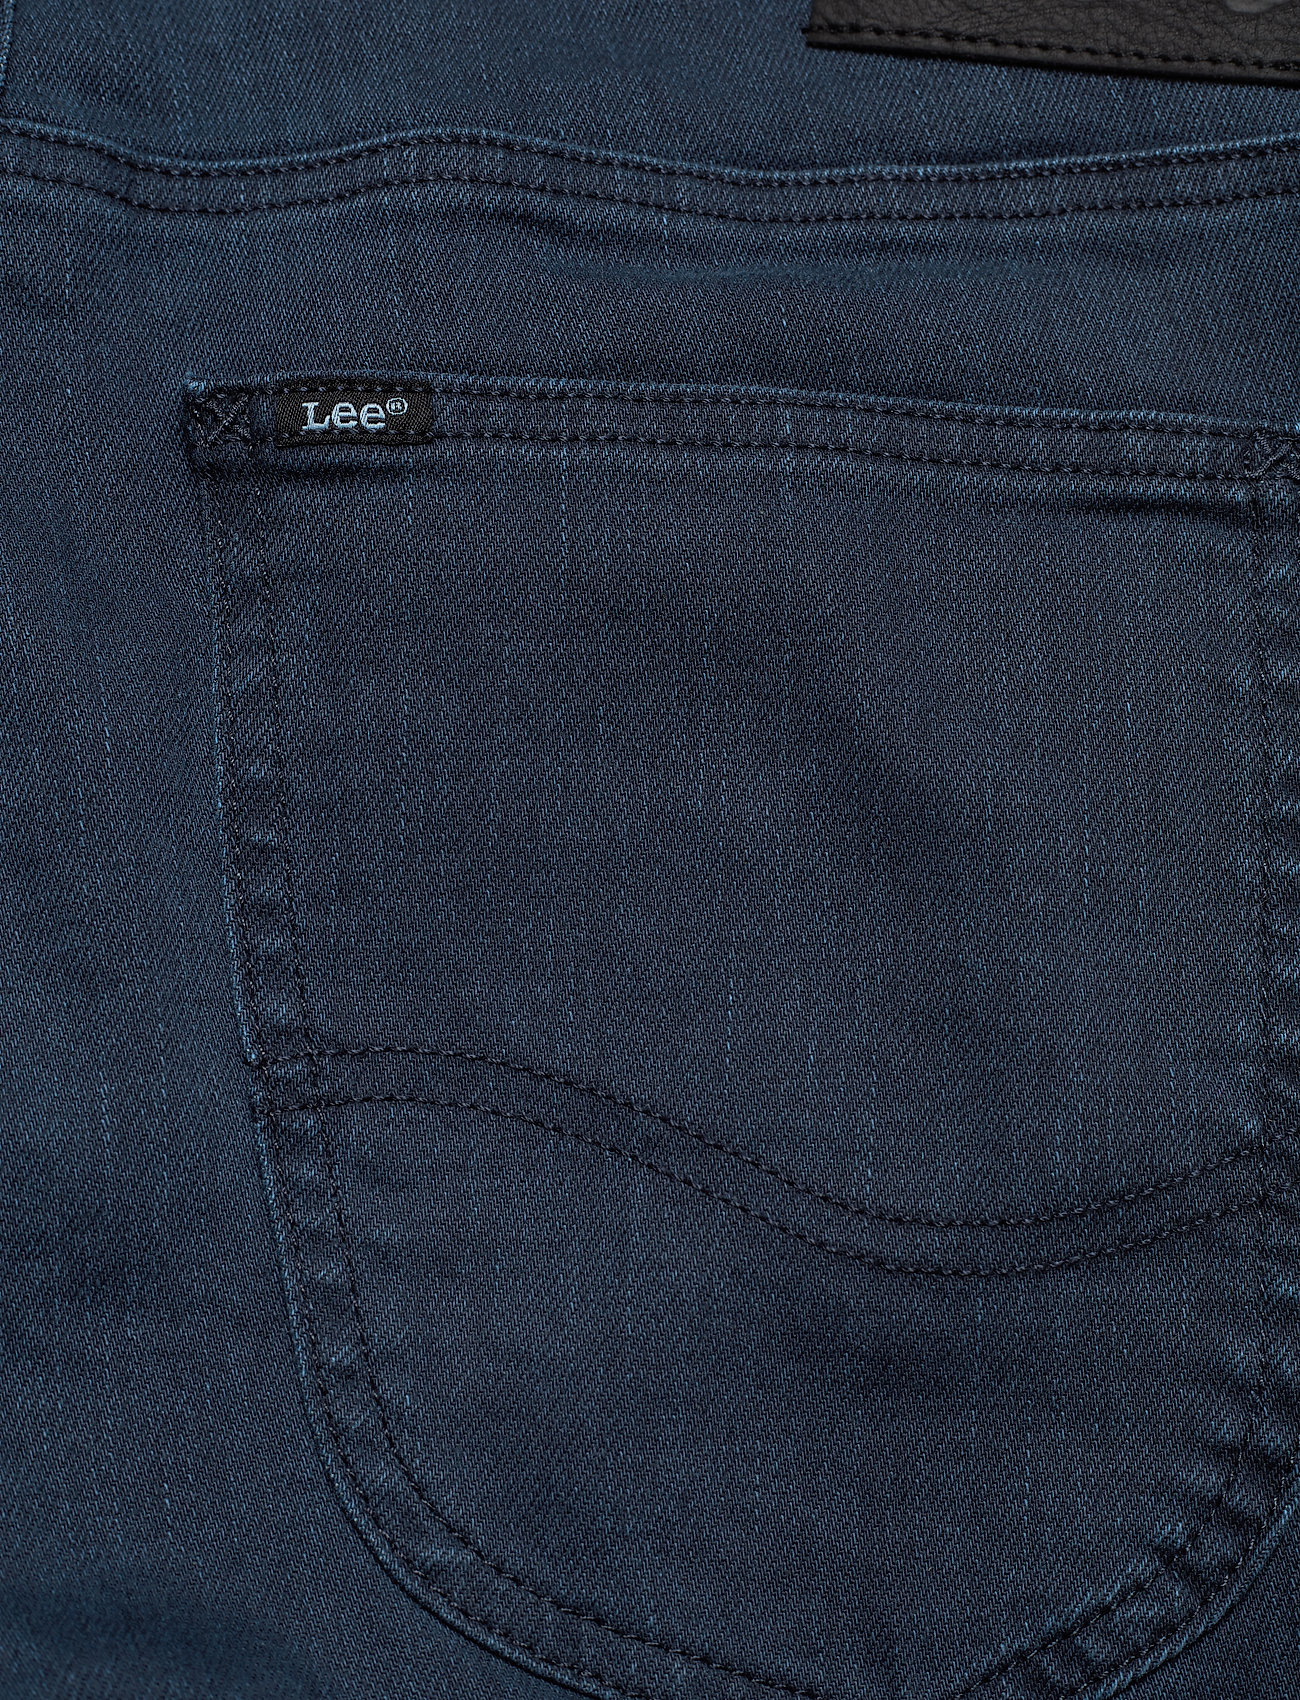 Lee Jeans Luke - Mission Worn